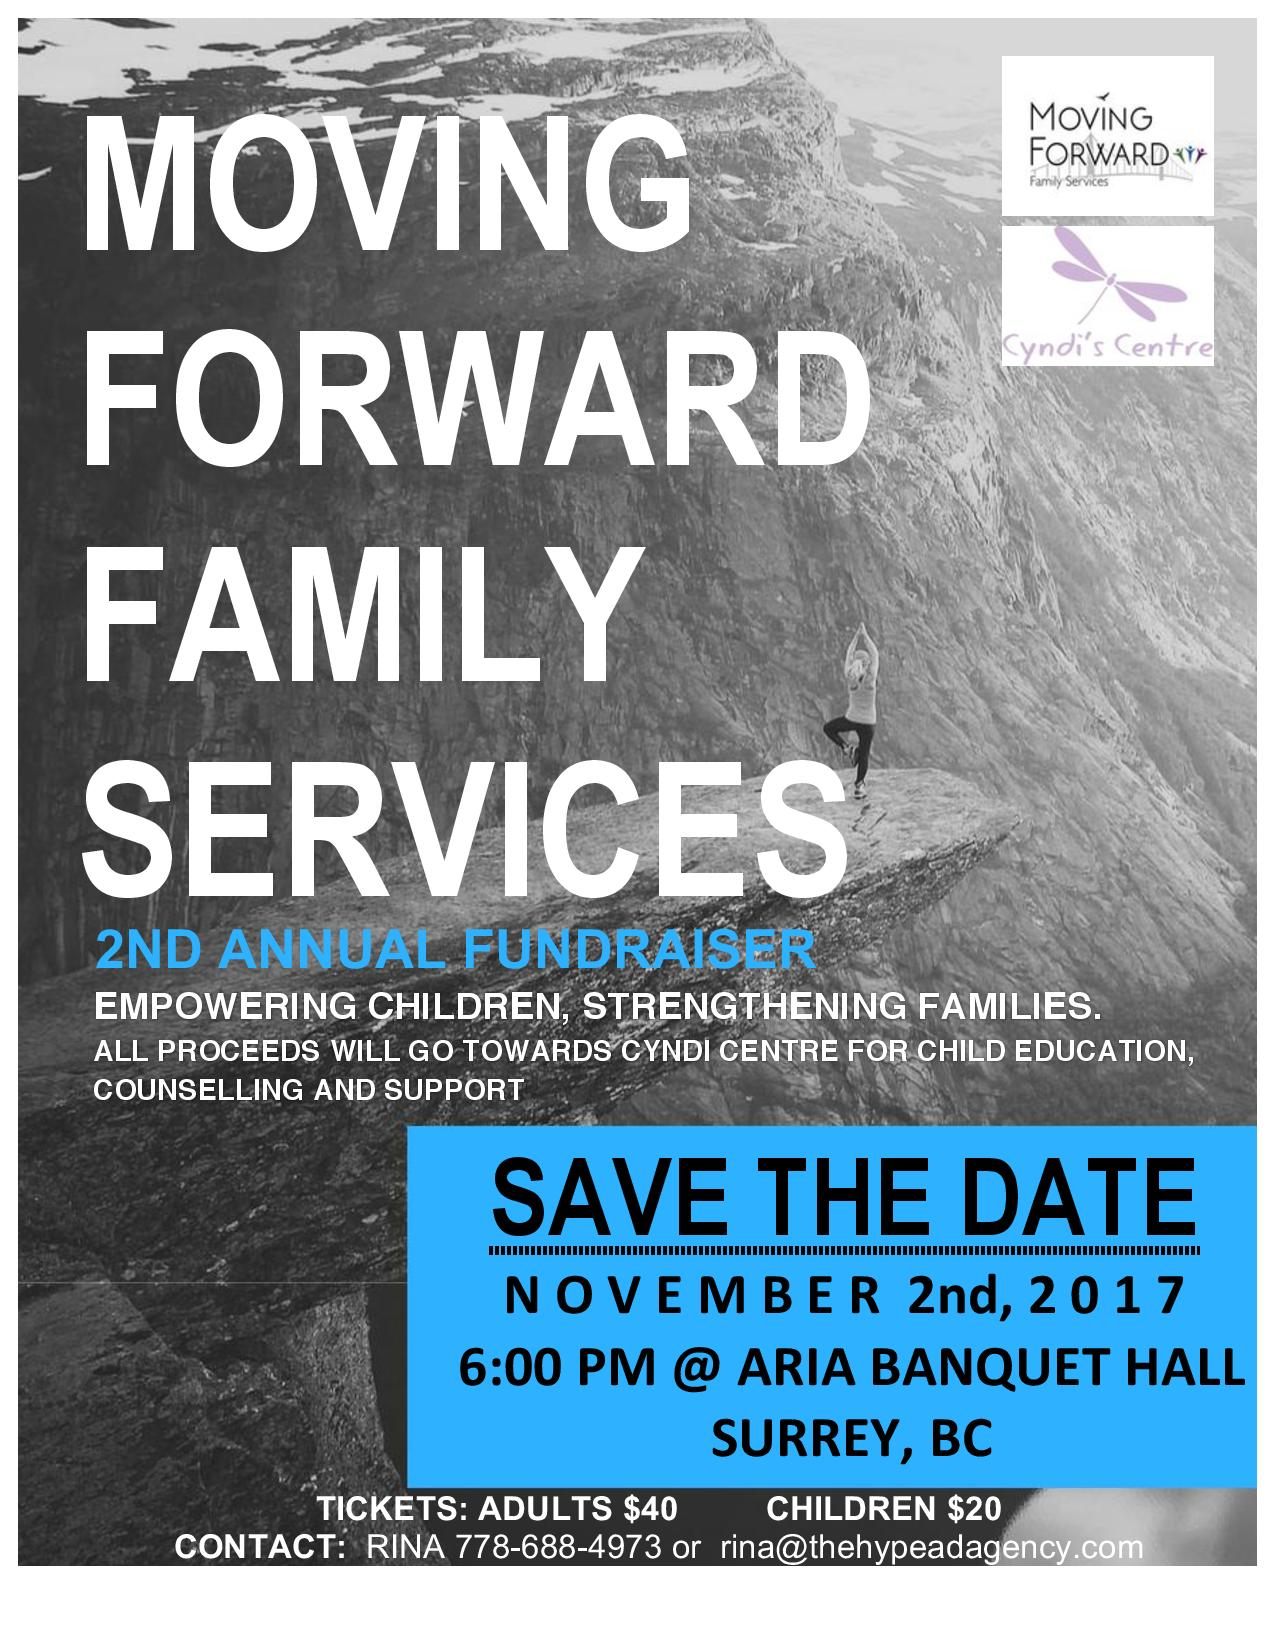 Moving Forward Family Services: 2nd Annual Fundraiser